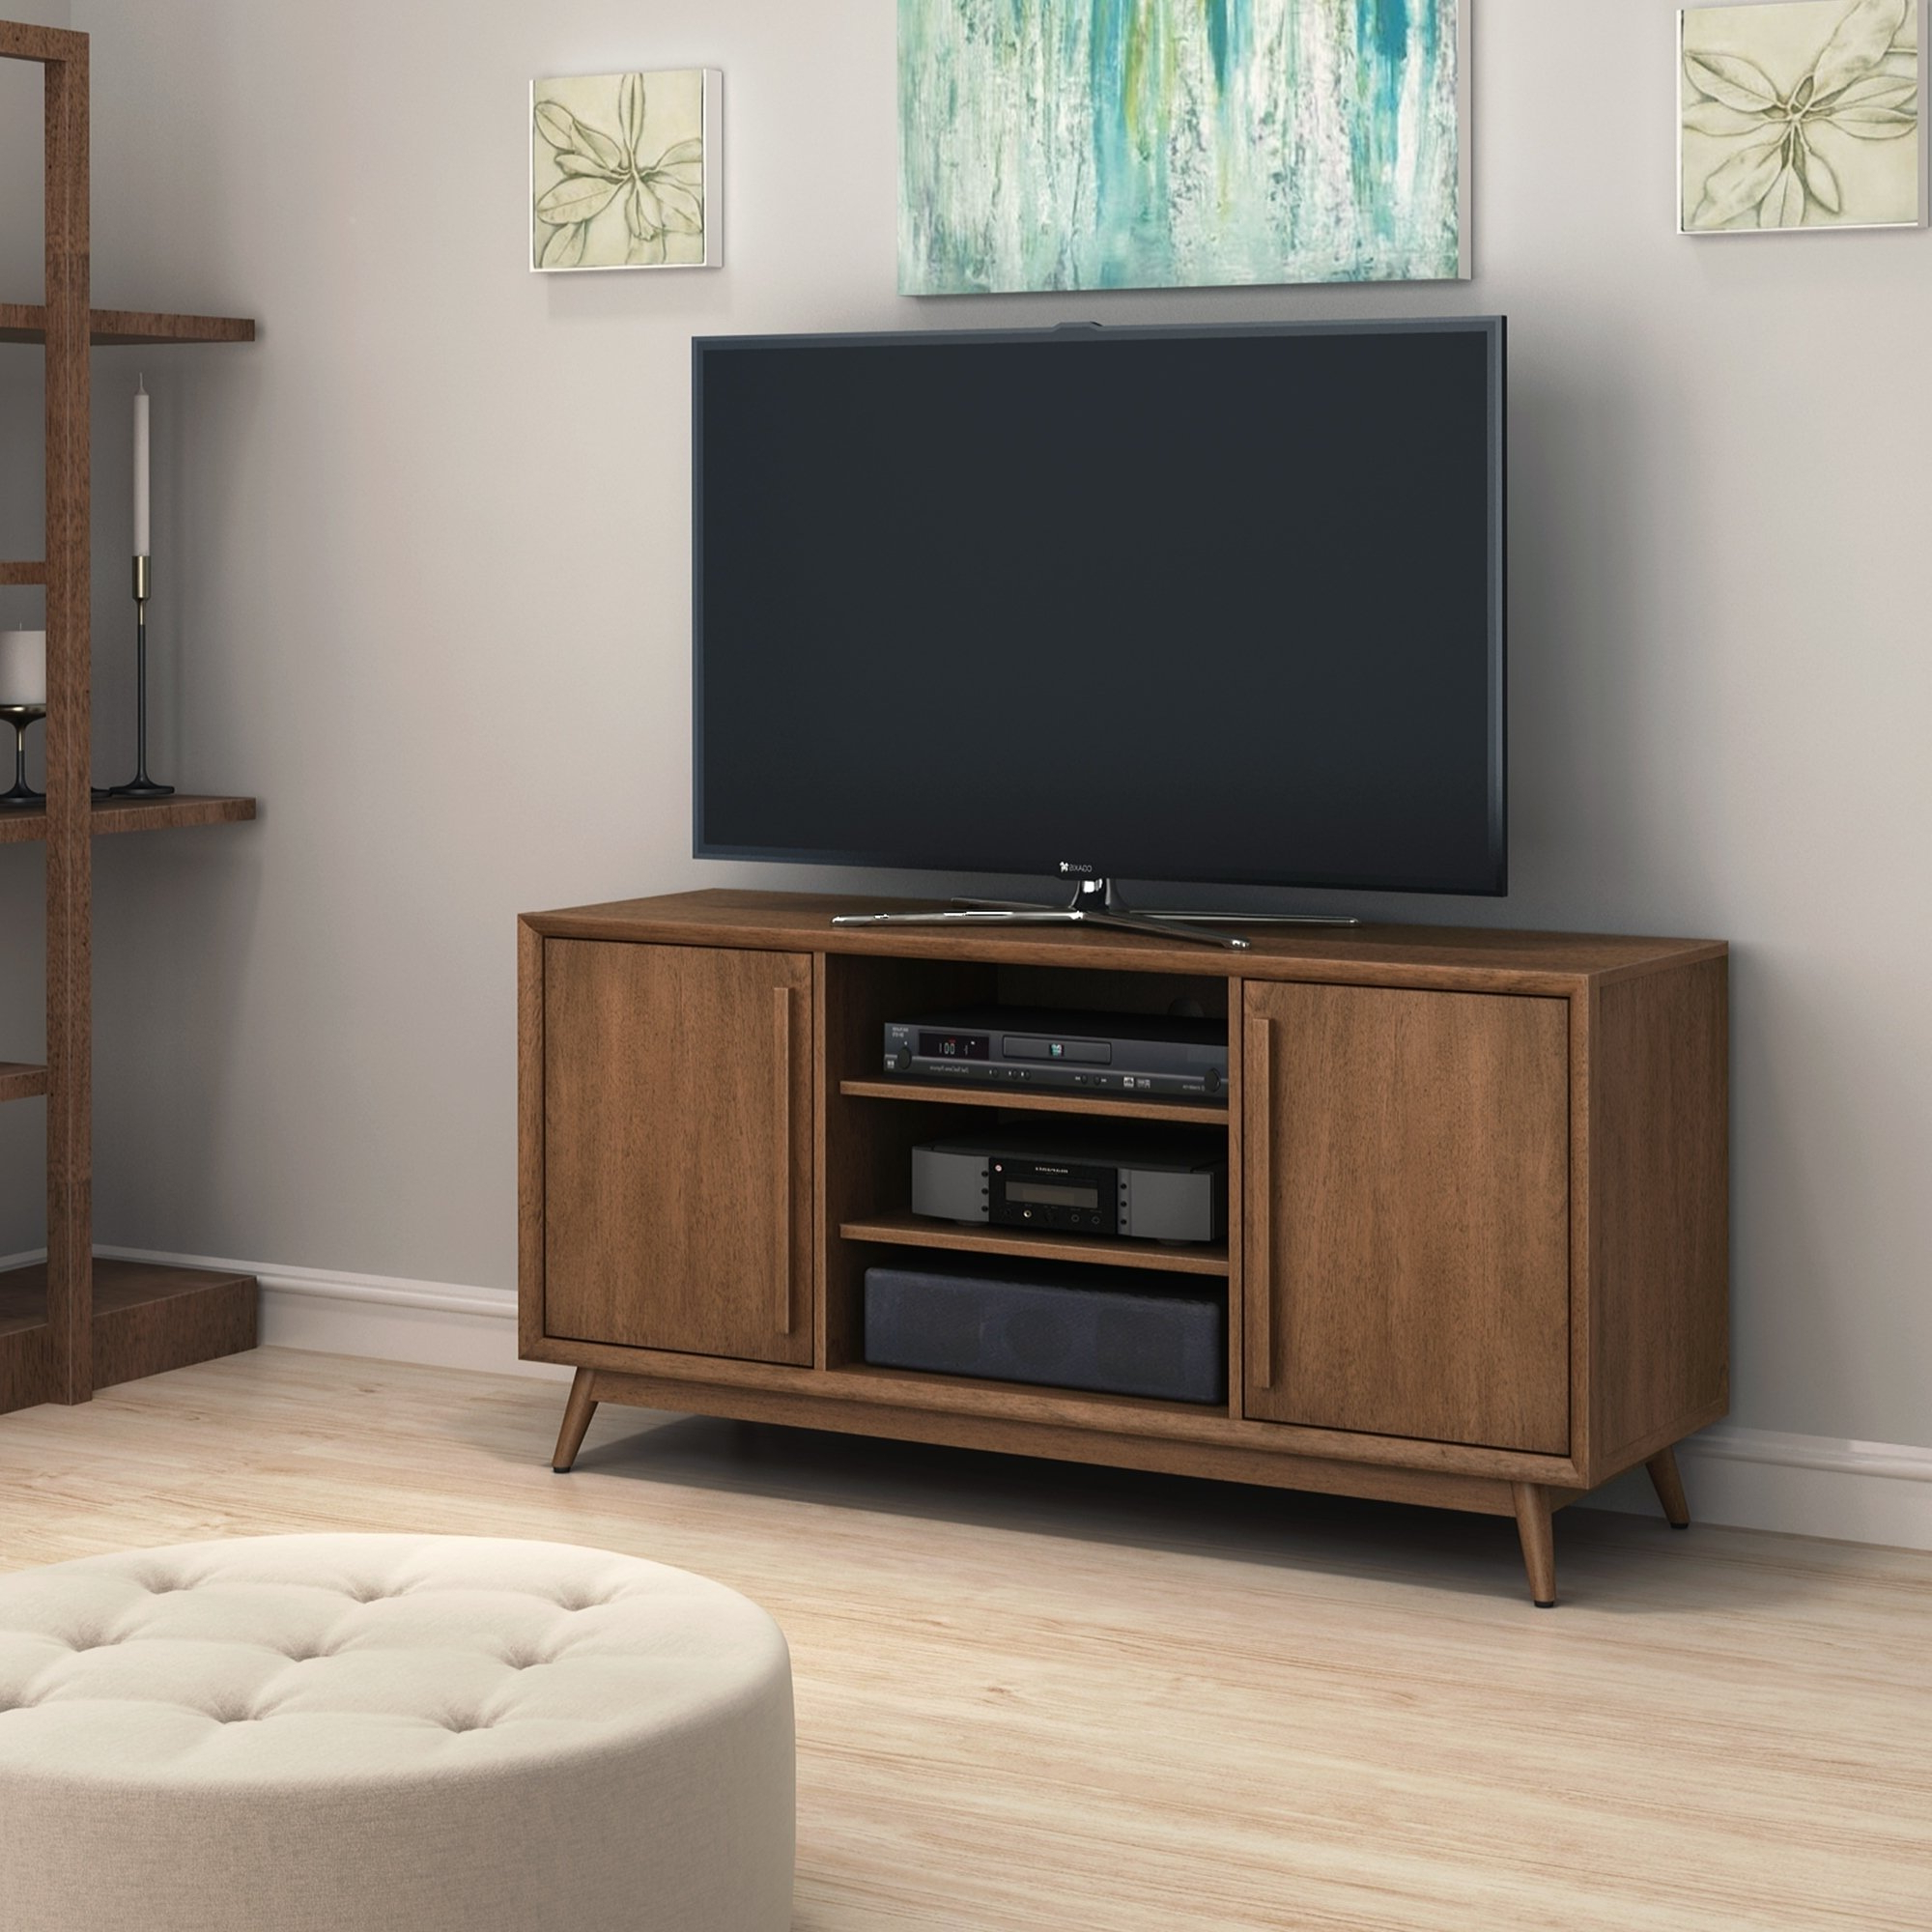 Widely Used Canyon 54 Inch Tv Stands For Shop Leawood Tv Stand For Tvs Up To 60 Inches, Broadwalk Birch (View 13 of 20)